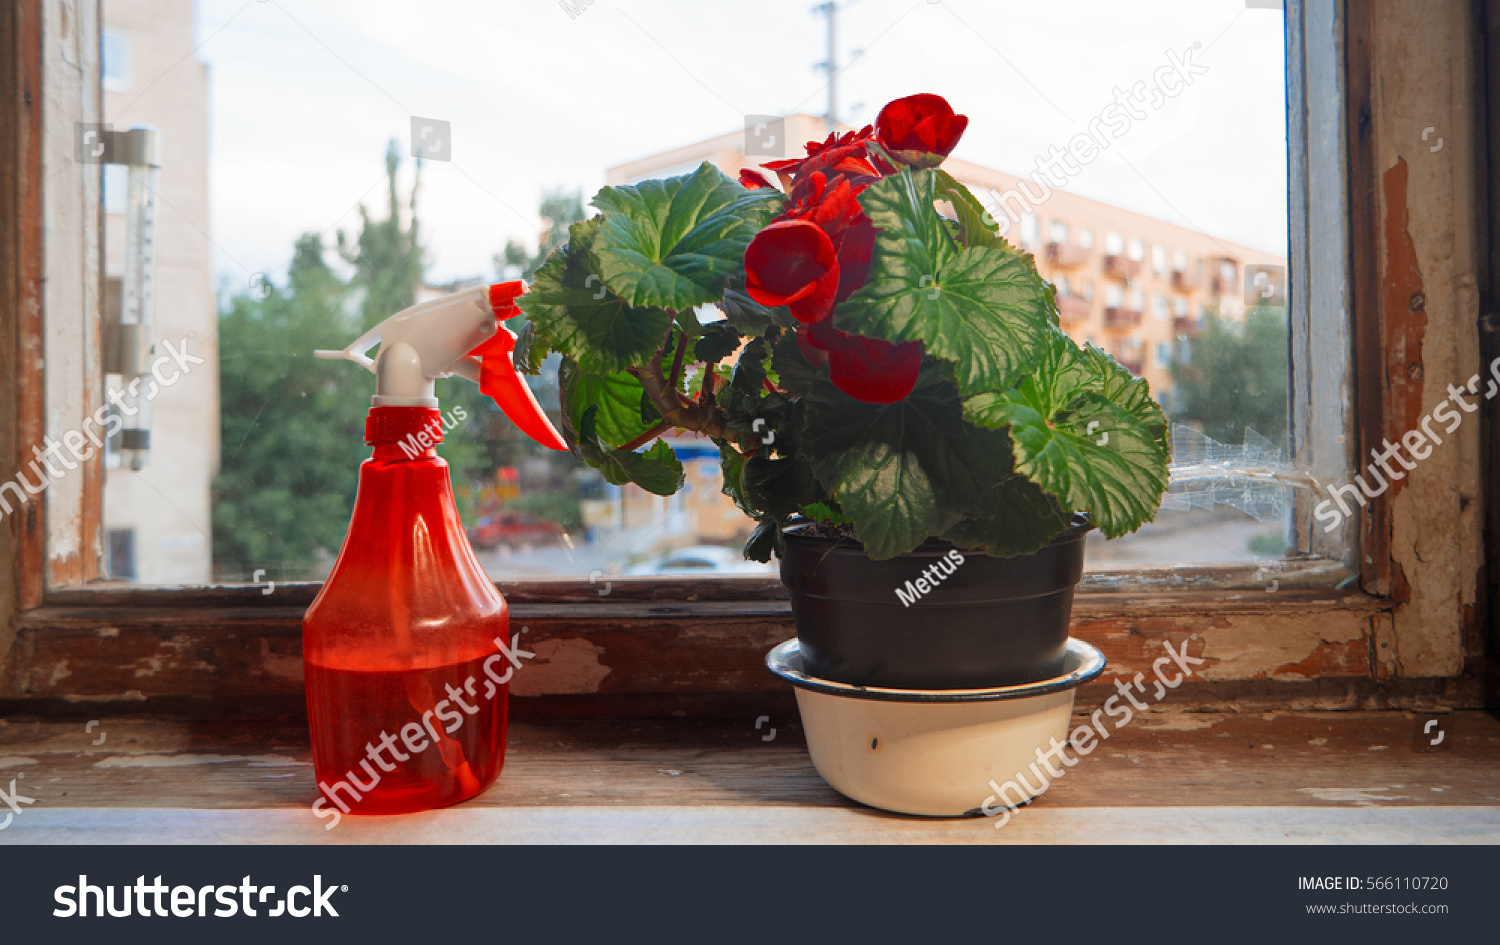 stock-photo-houseplant-with-big-red-flow